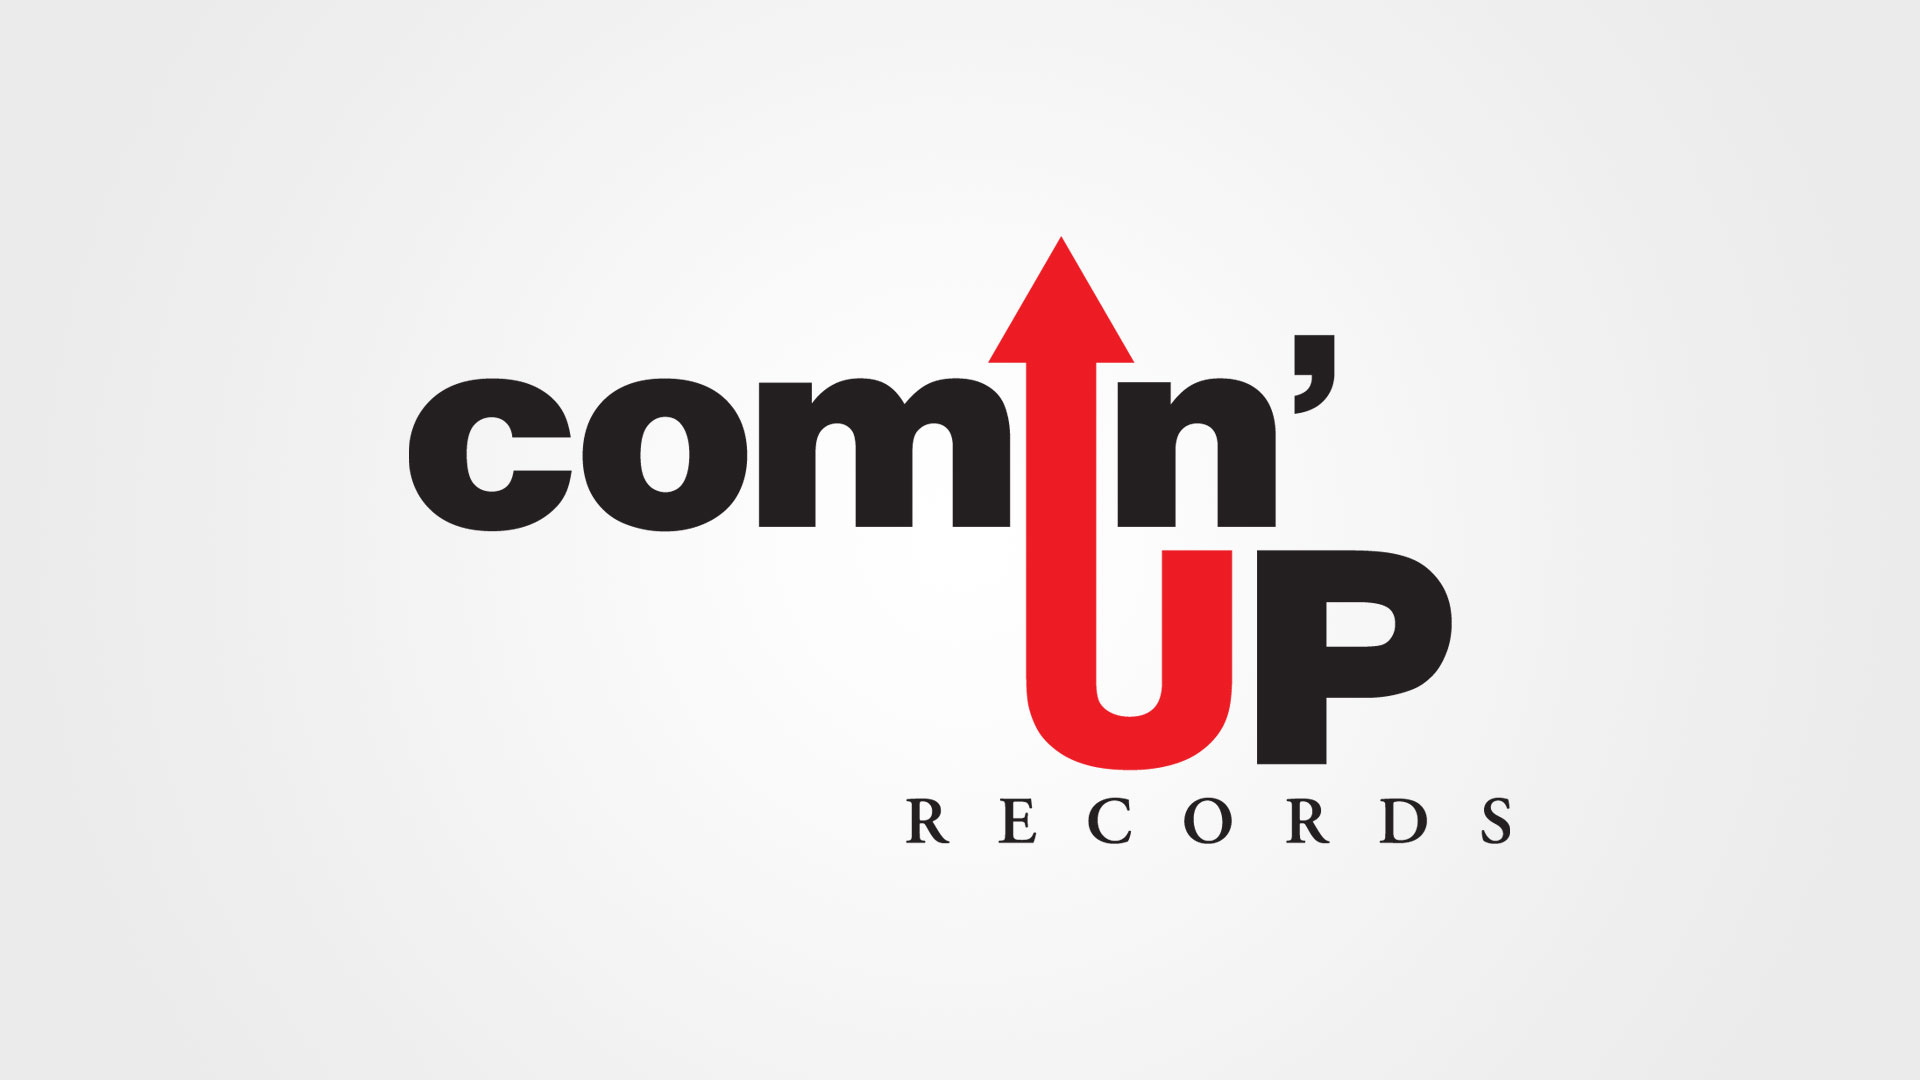 Comin' Up Records